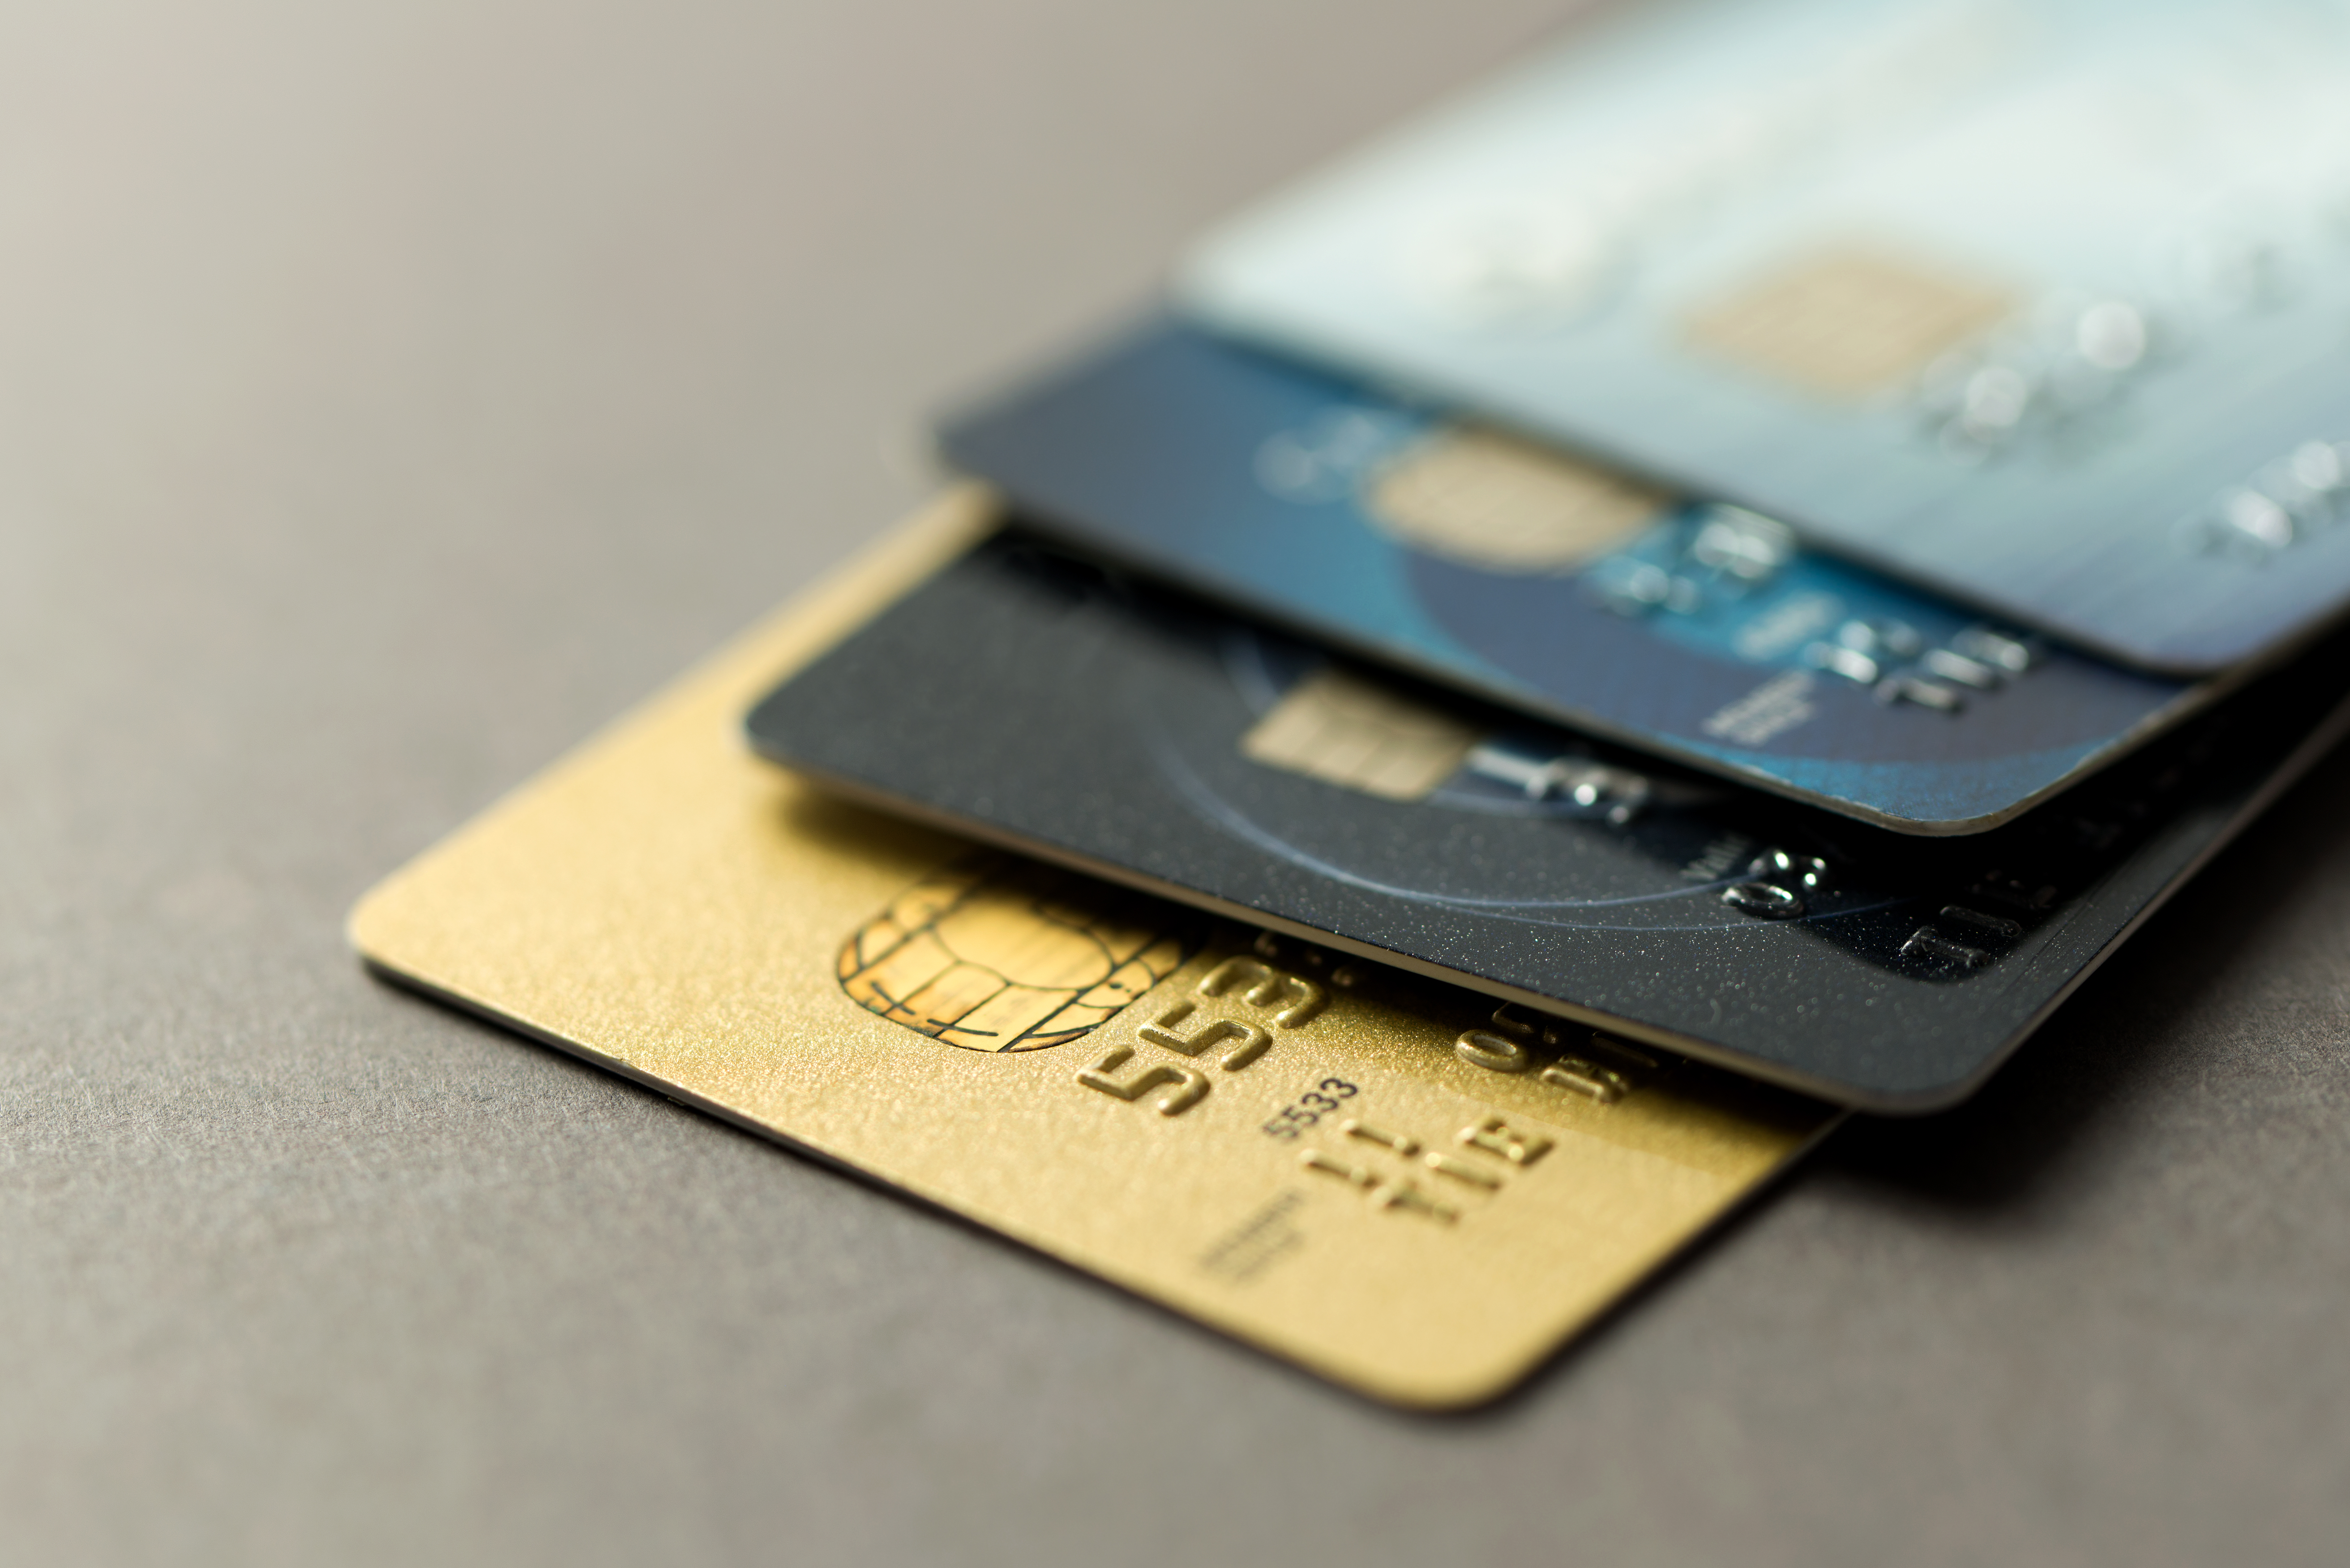 How Do Thieves Use Stolen Credit Cards?